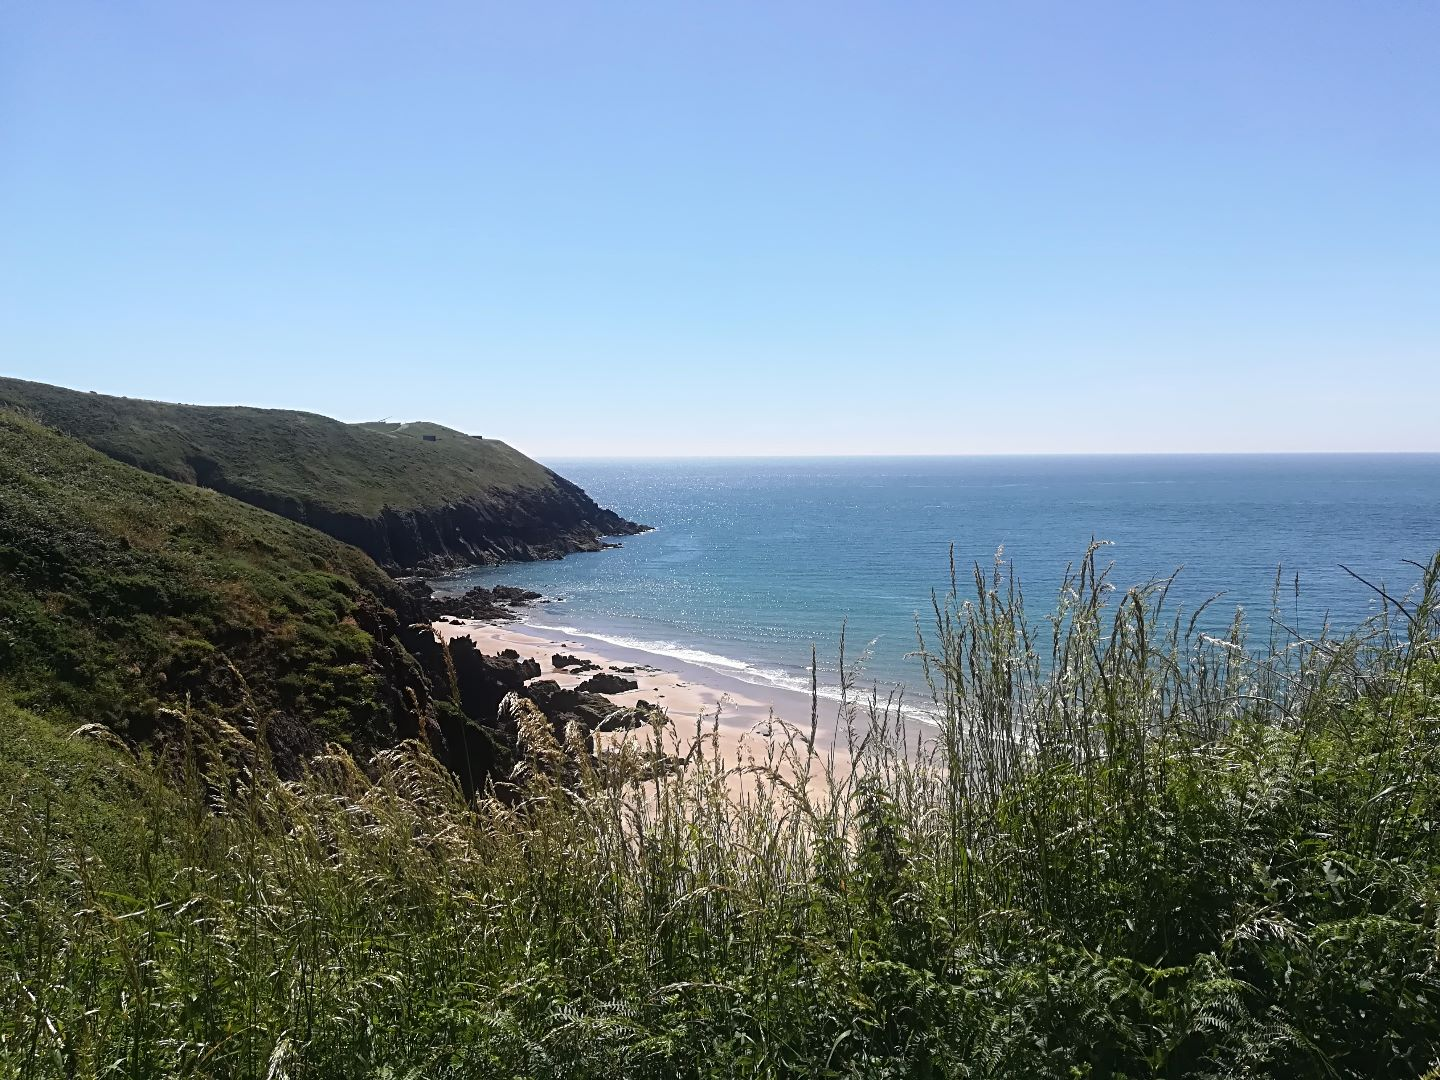 Summertime in Wales